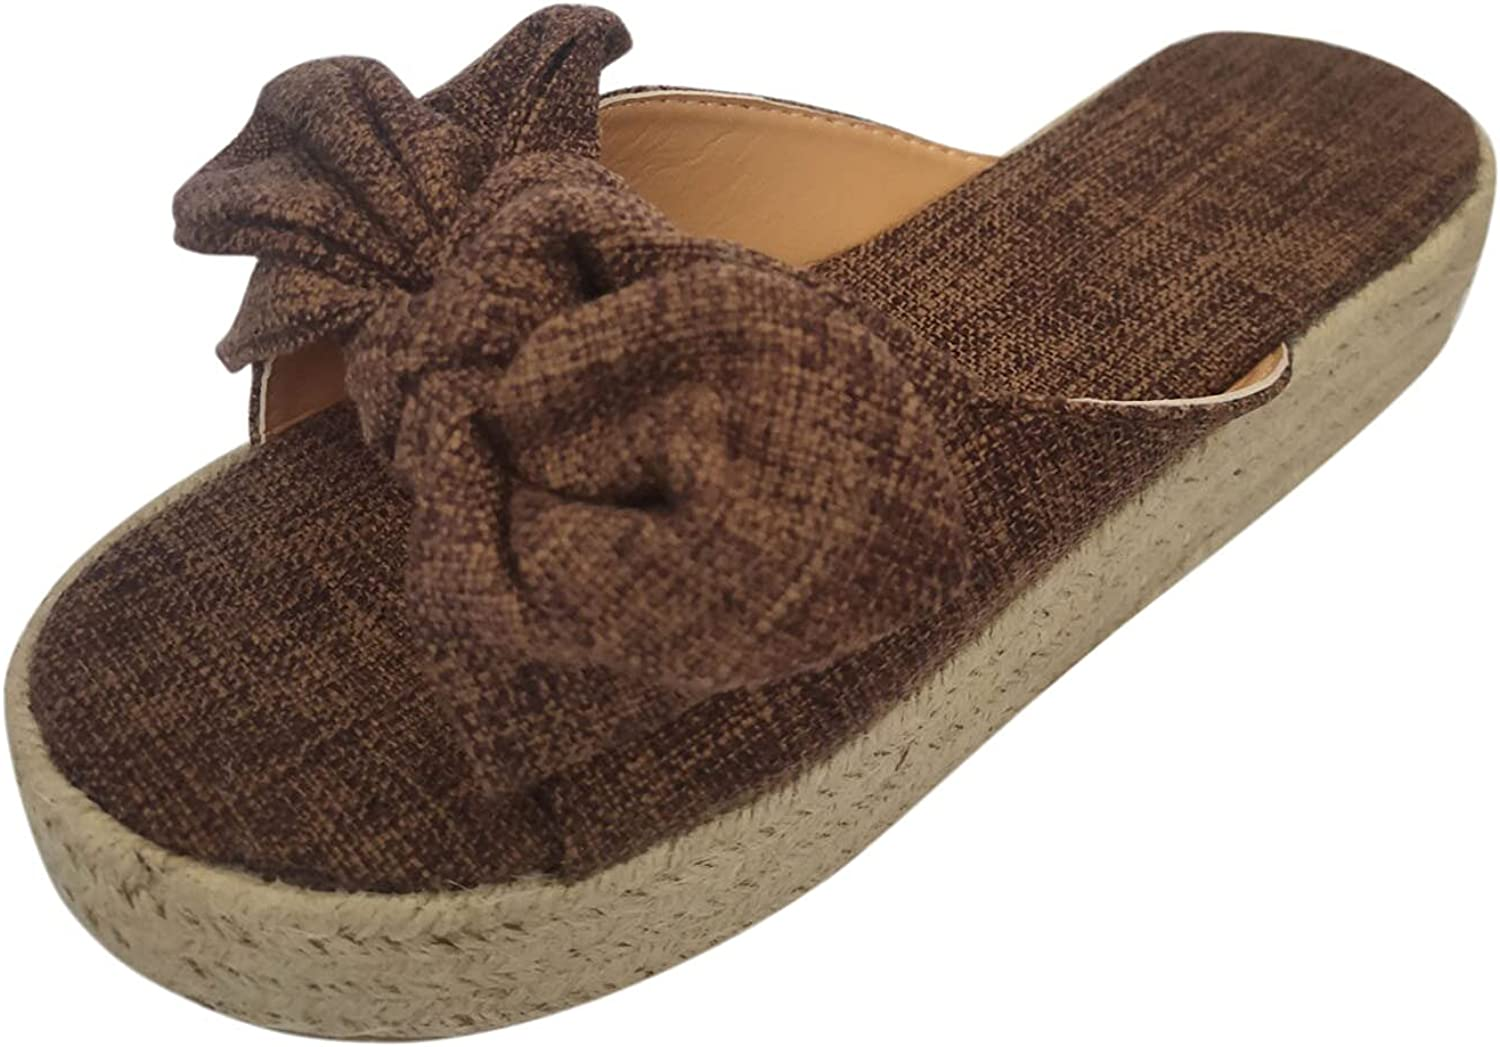 USYFAKGH Ladies Shoes Max 41% OFF Women's Reservation Fashion Large Bowknot Size Platfor